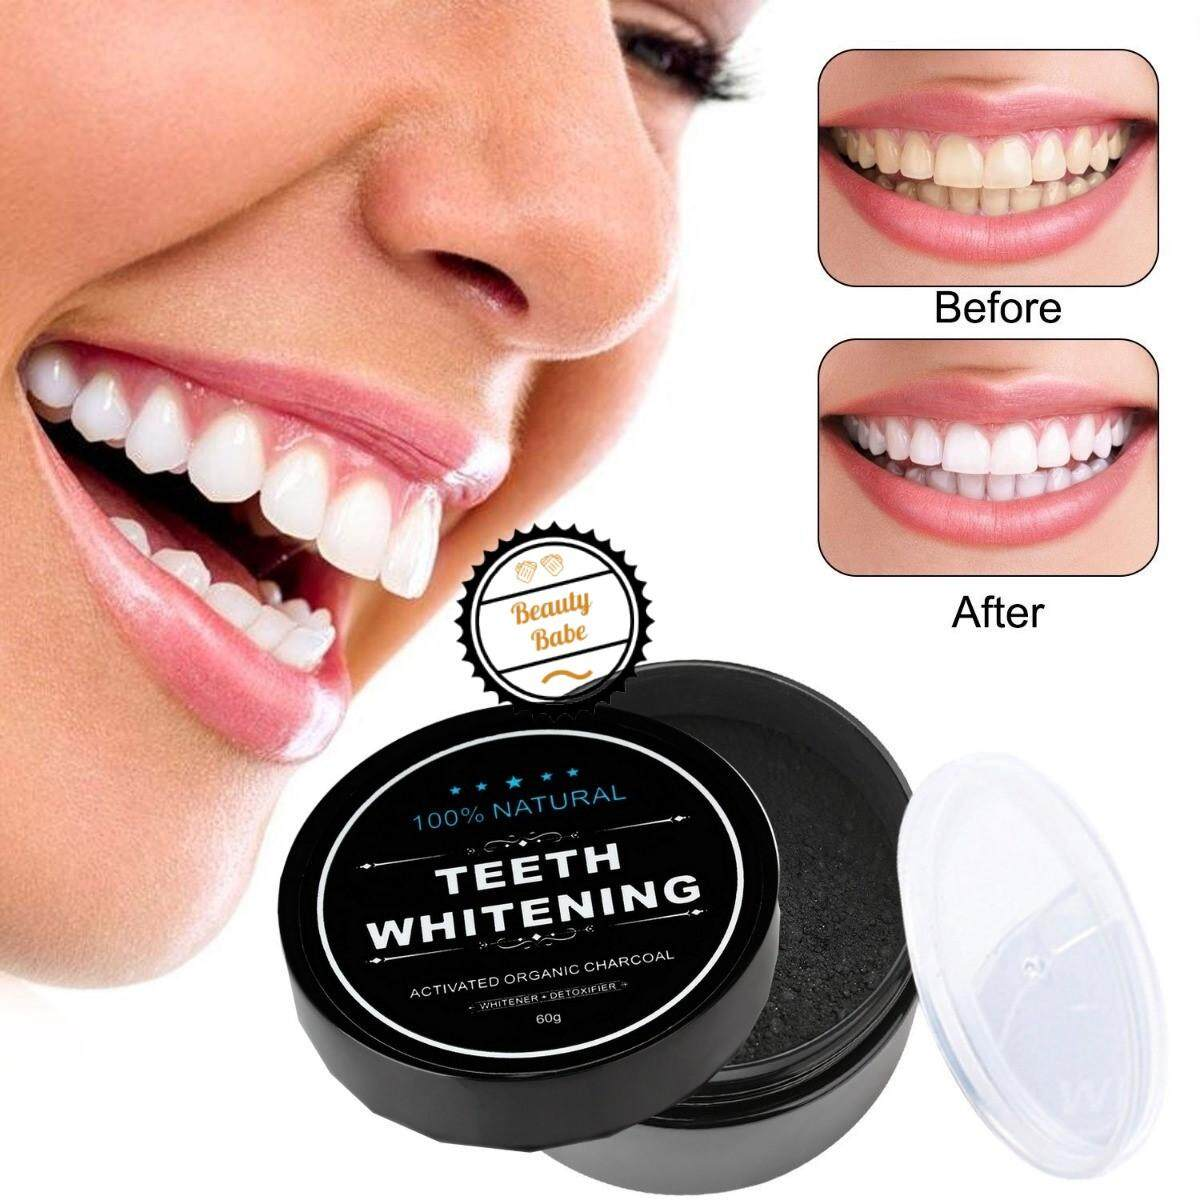 Tooth Teeth Whitening 30g/jar Effective Professional Natural Activated Charcoal Powder [ready Stock] By Beauty Babe.